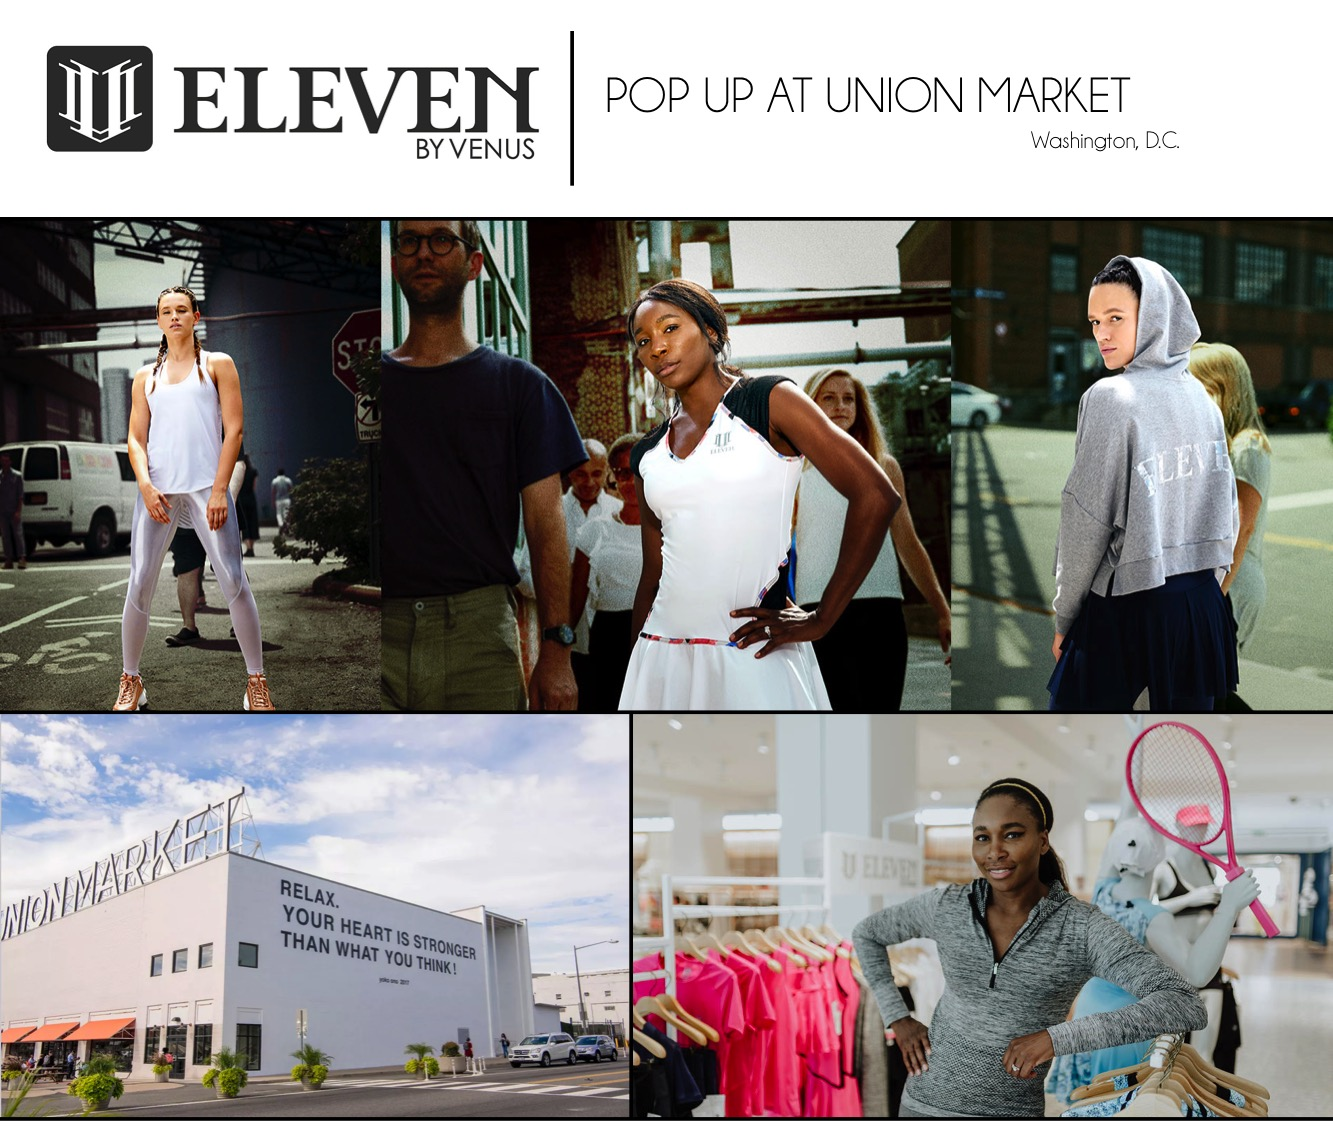 EleVen will open a pop-up next month in Washington, D.C.